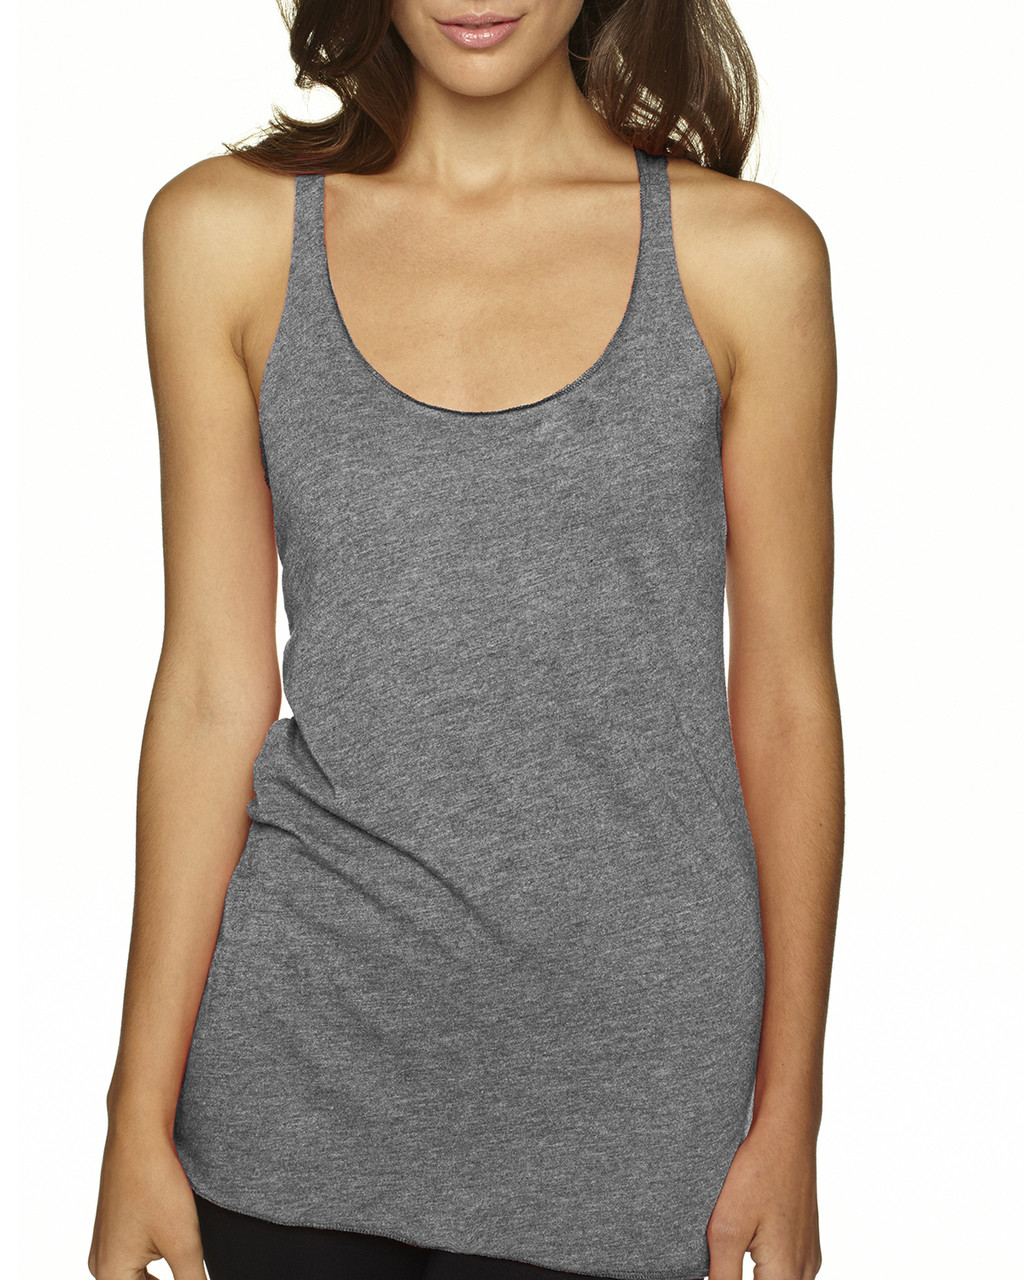 Premium Heather - 6733 Next Level Tri-Blend Racerback Tank Top | Blankclothing.ca